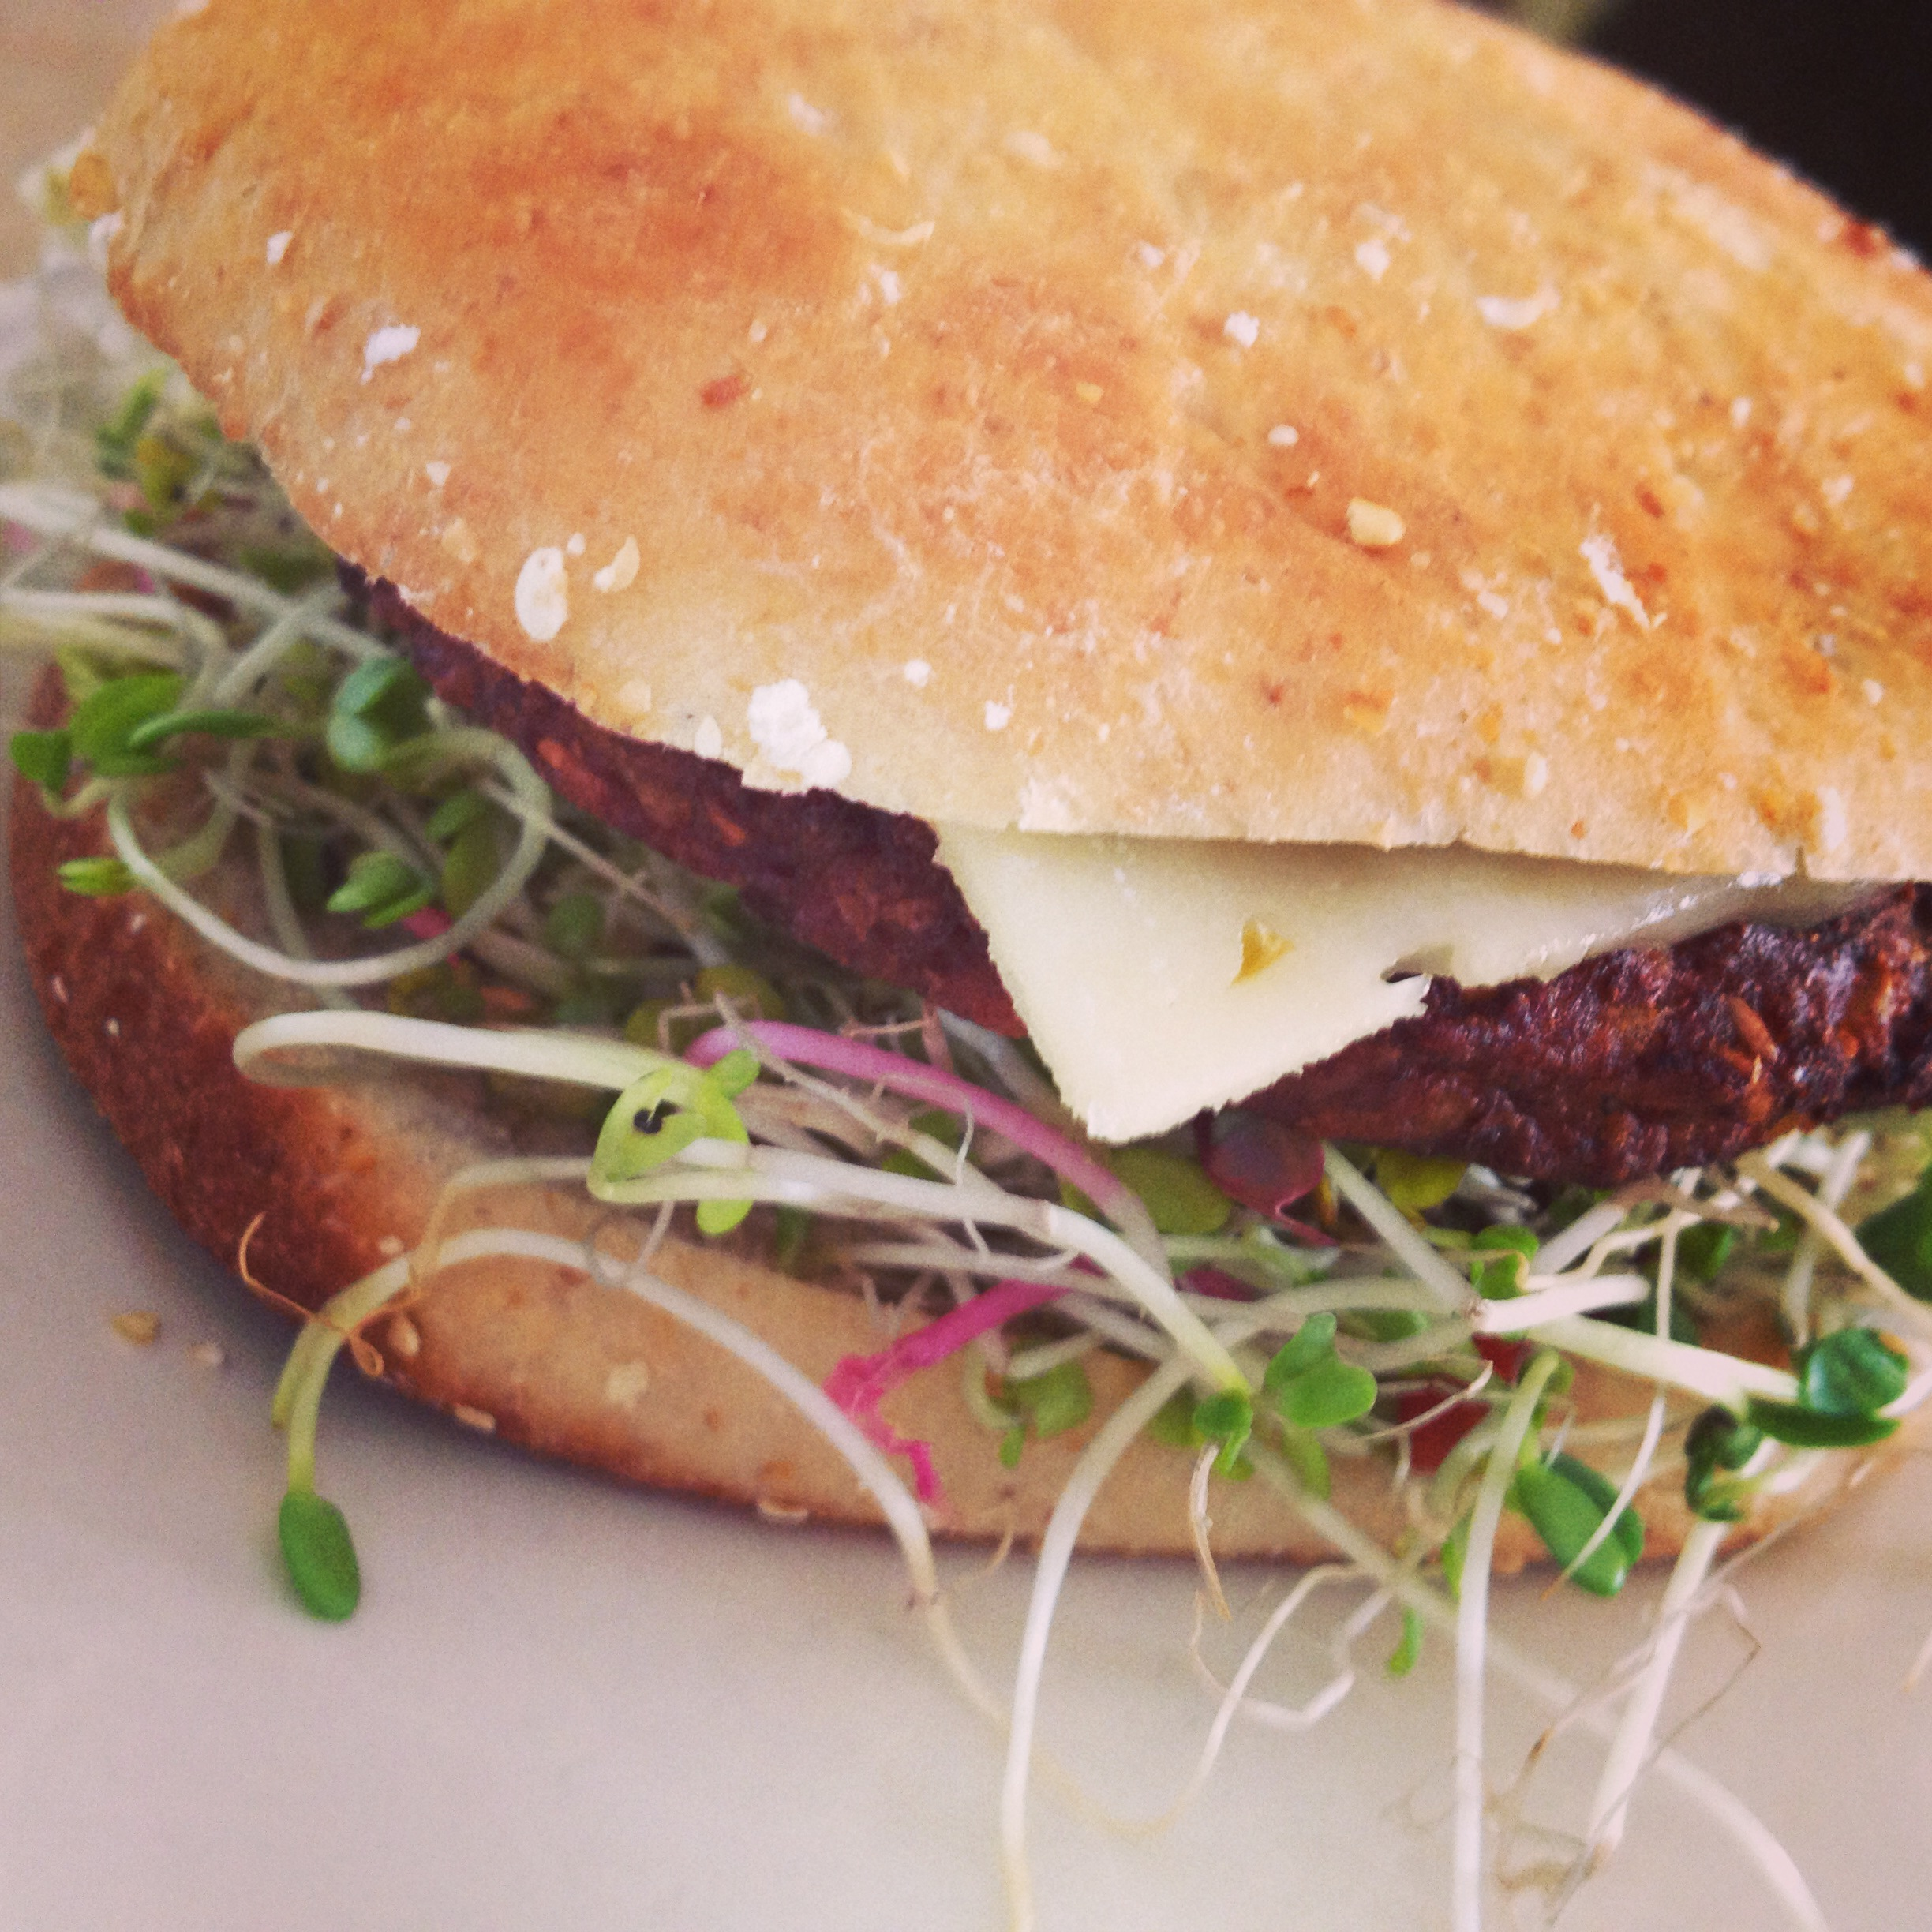 Meatless Monday: Veggie Burger With Pepper Jack & Sprouts